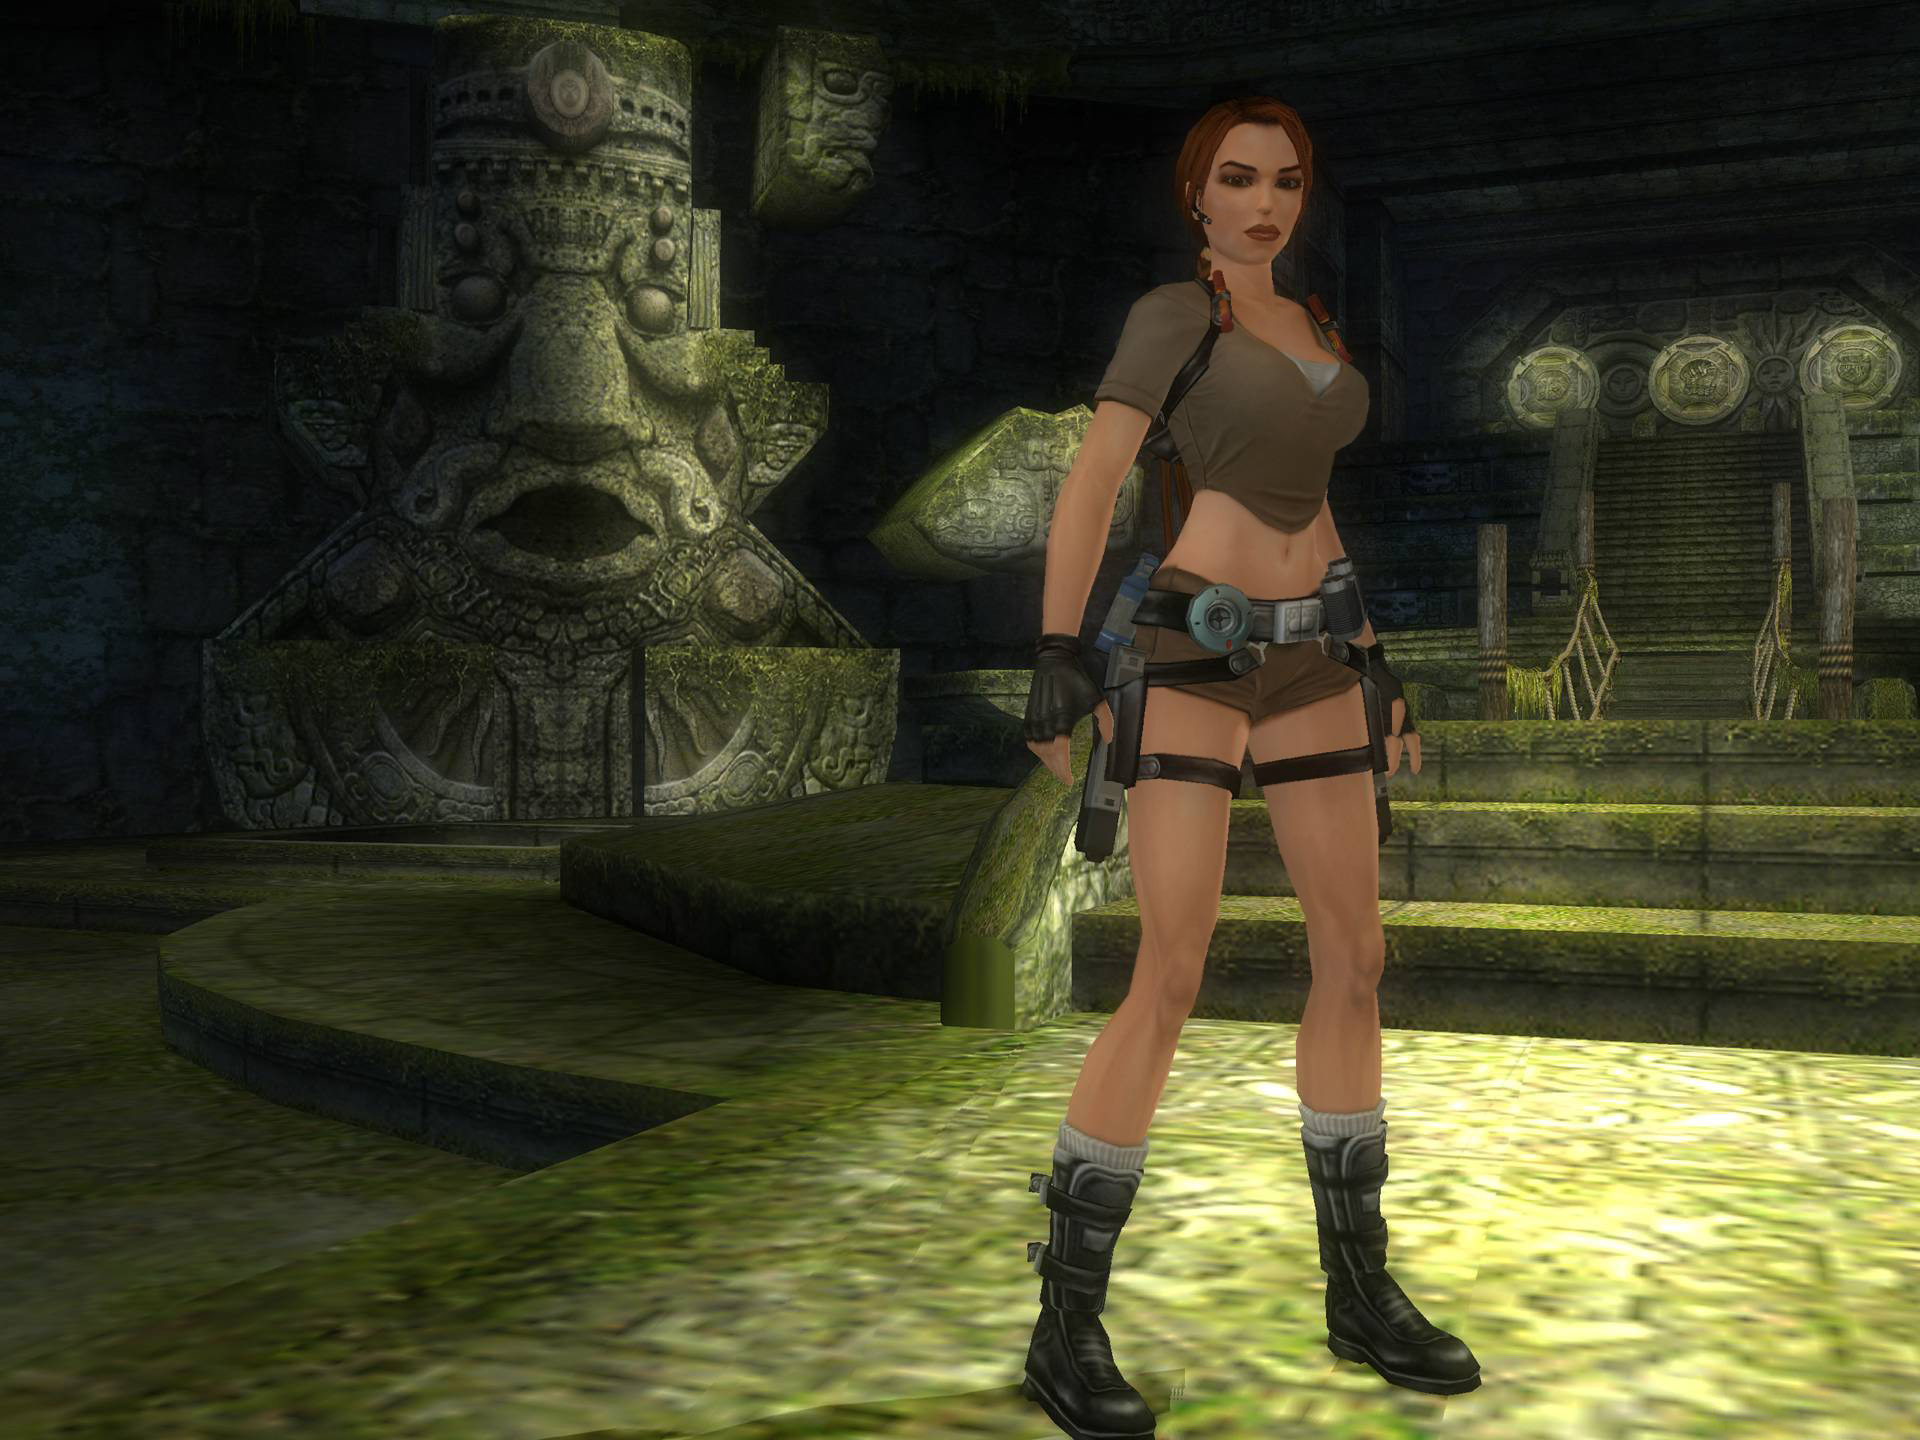 Lara croft 3d alien nudes galleries